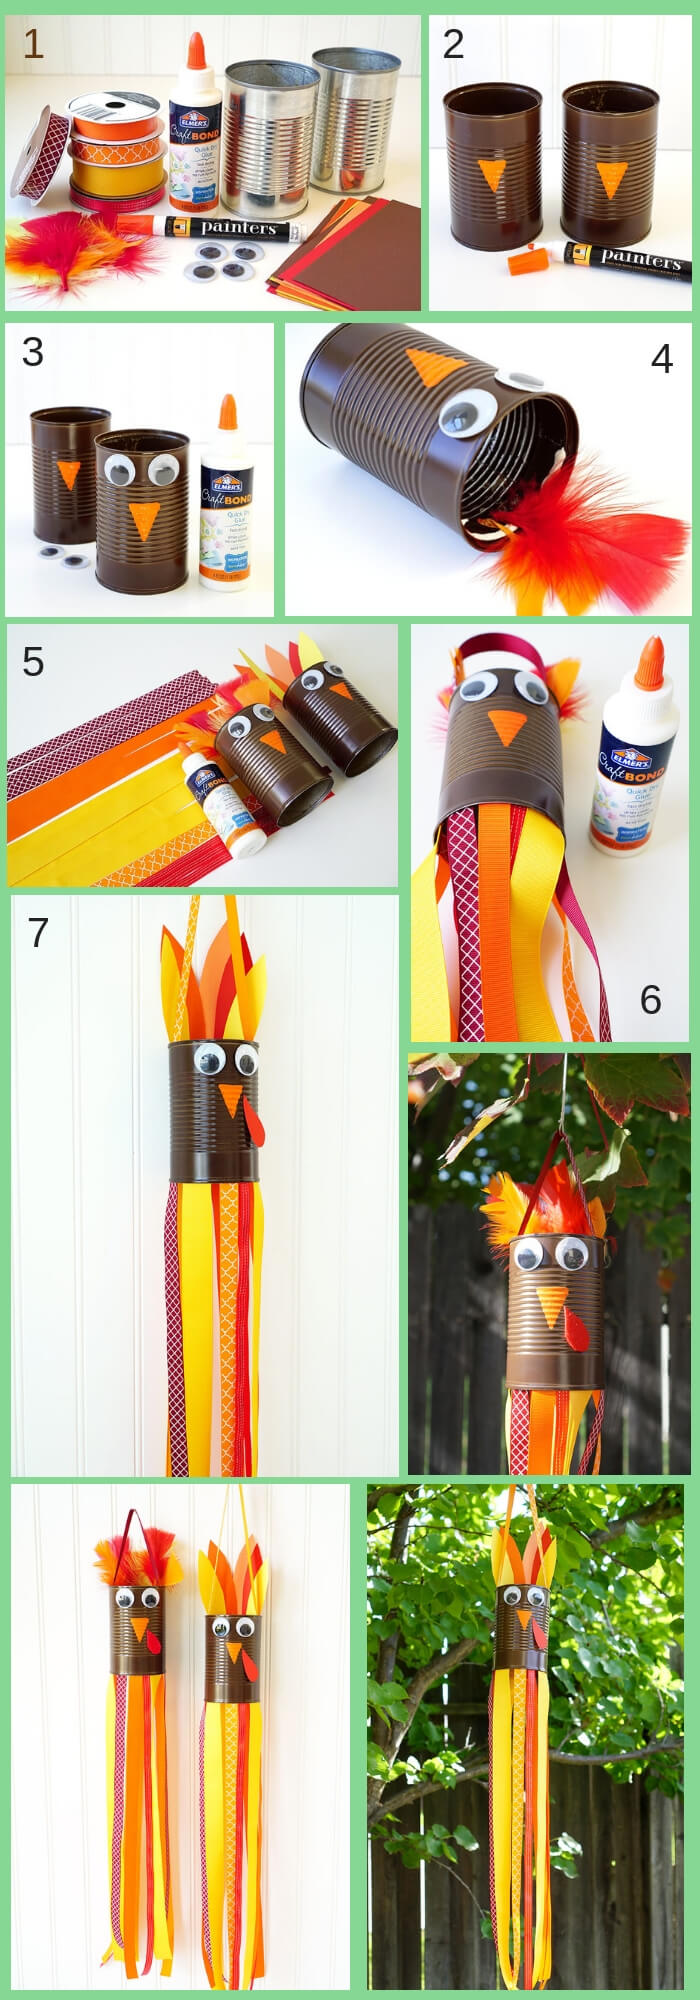 Turkey Windsocks | Simple Ideas for Kids' Crafts for Thanksgiving - FarmFoodFamily.com